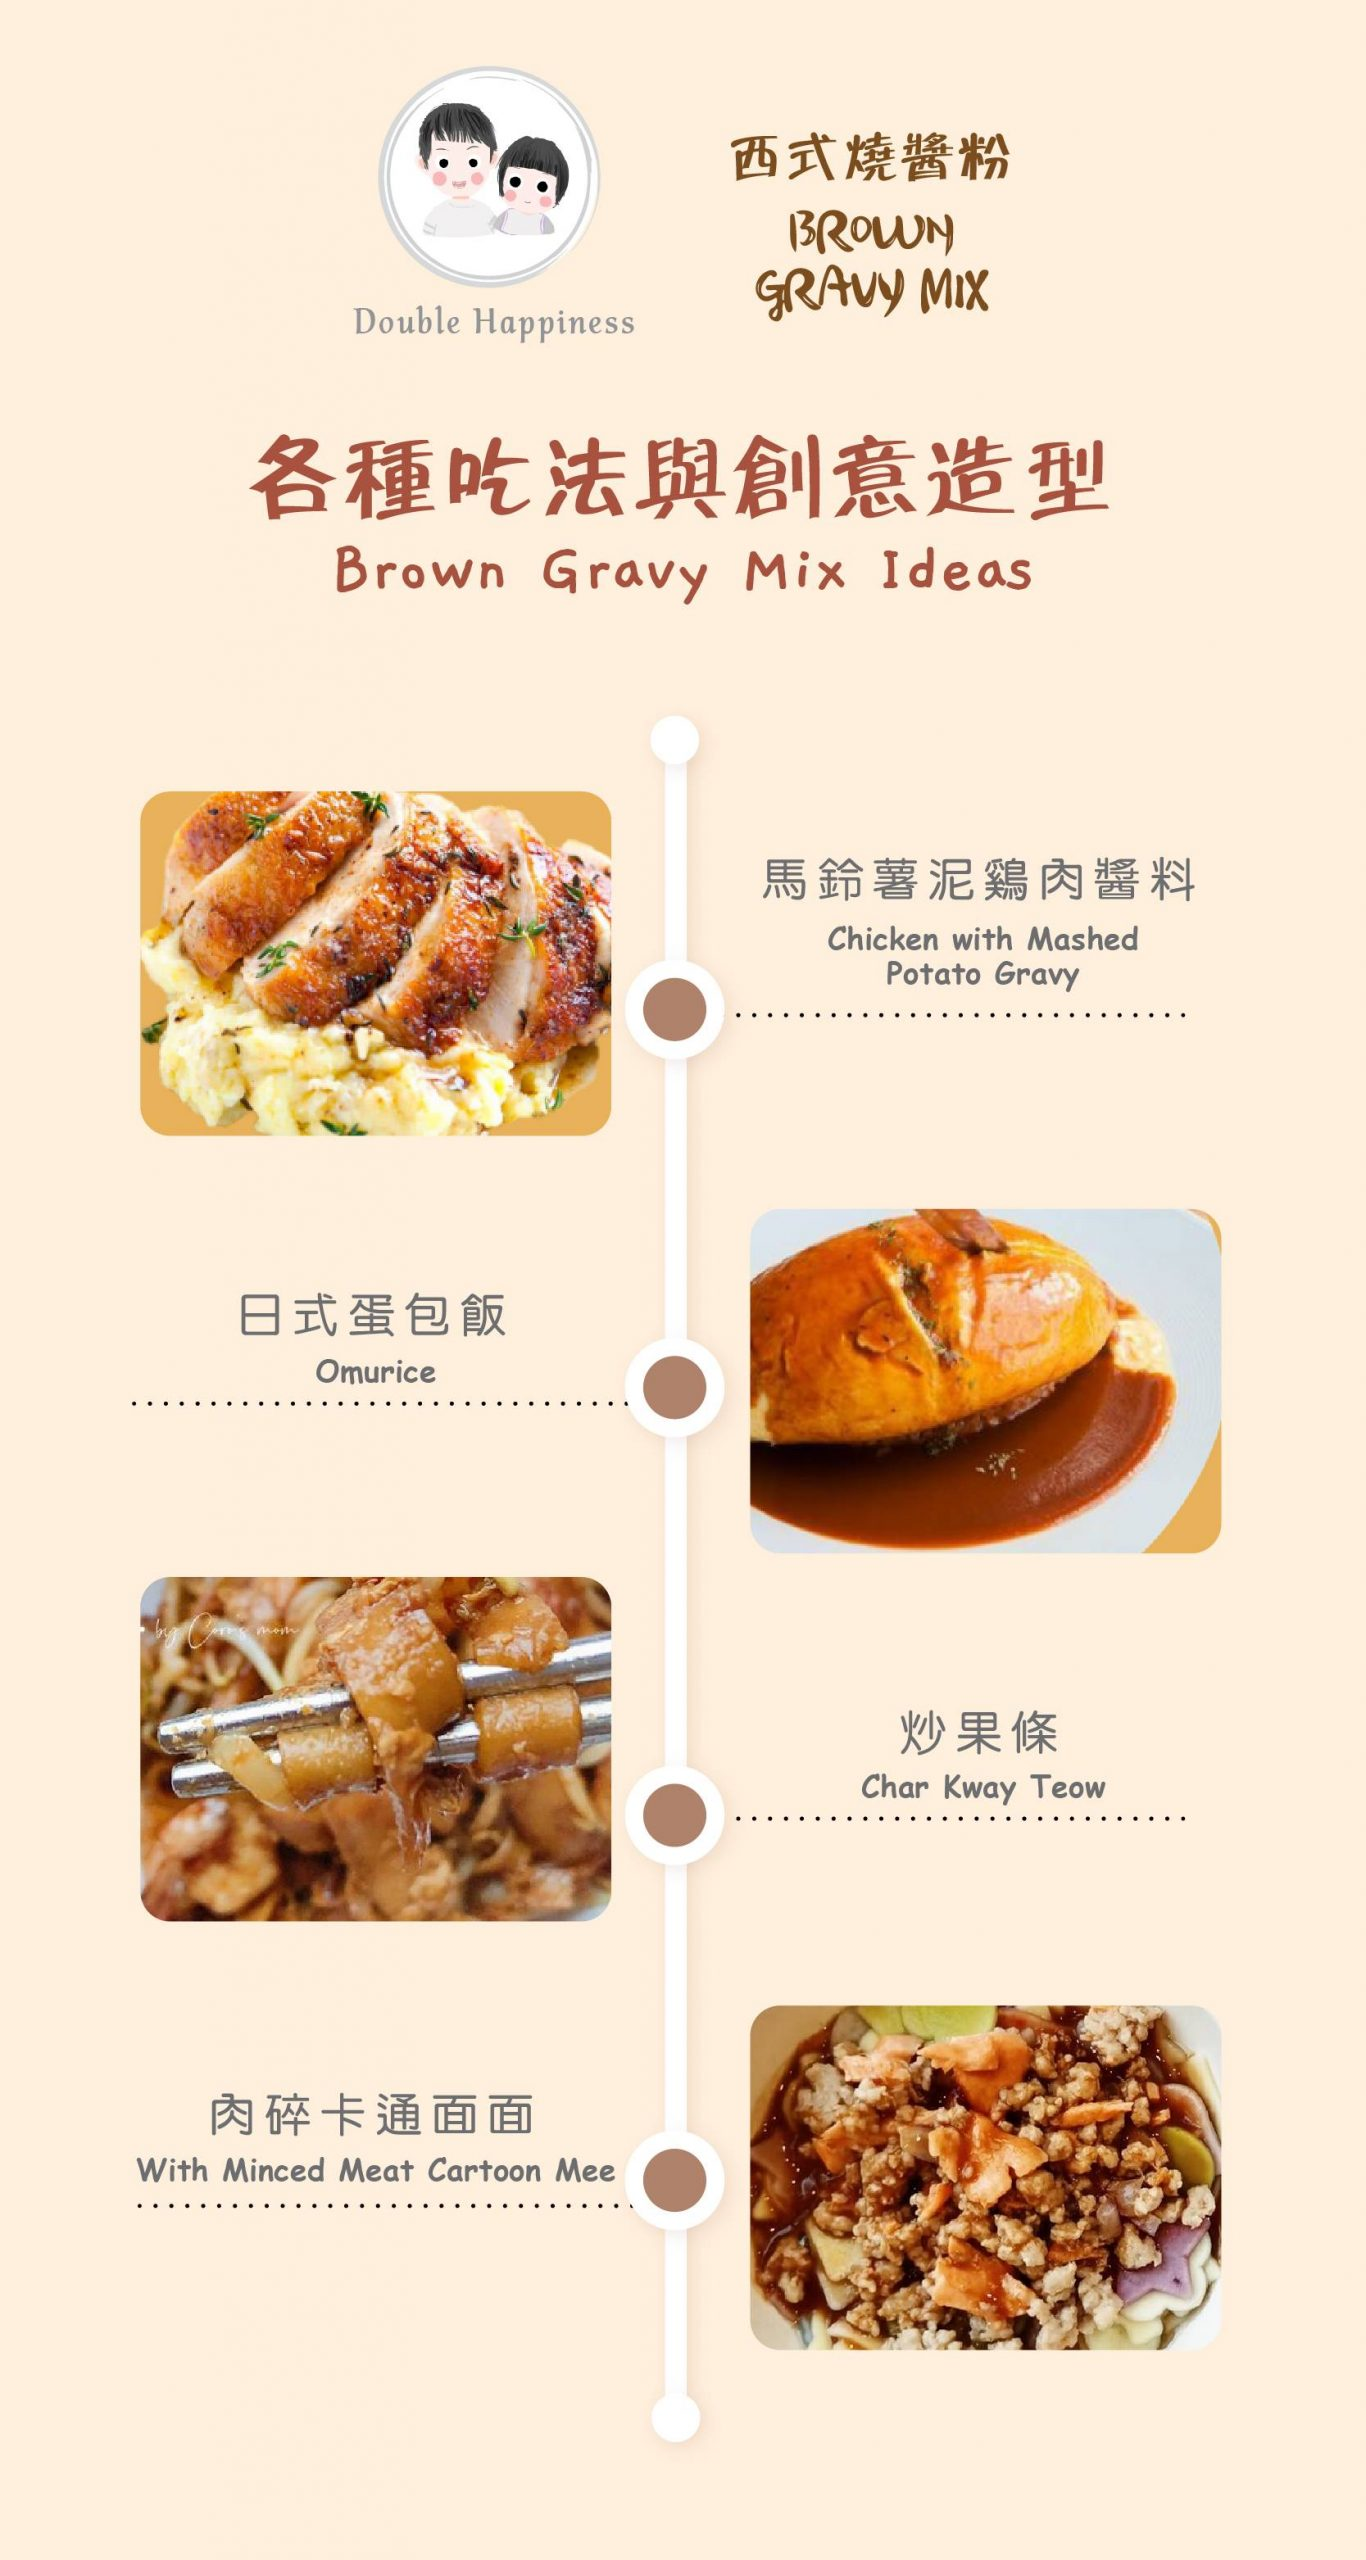 Cooking ideas with our brown gravy mix